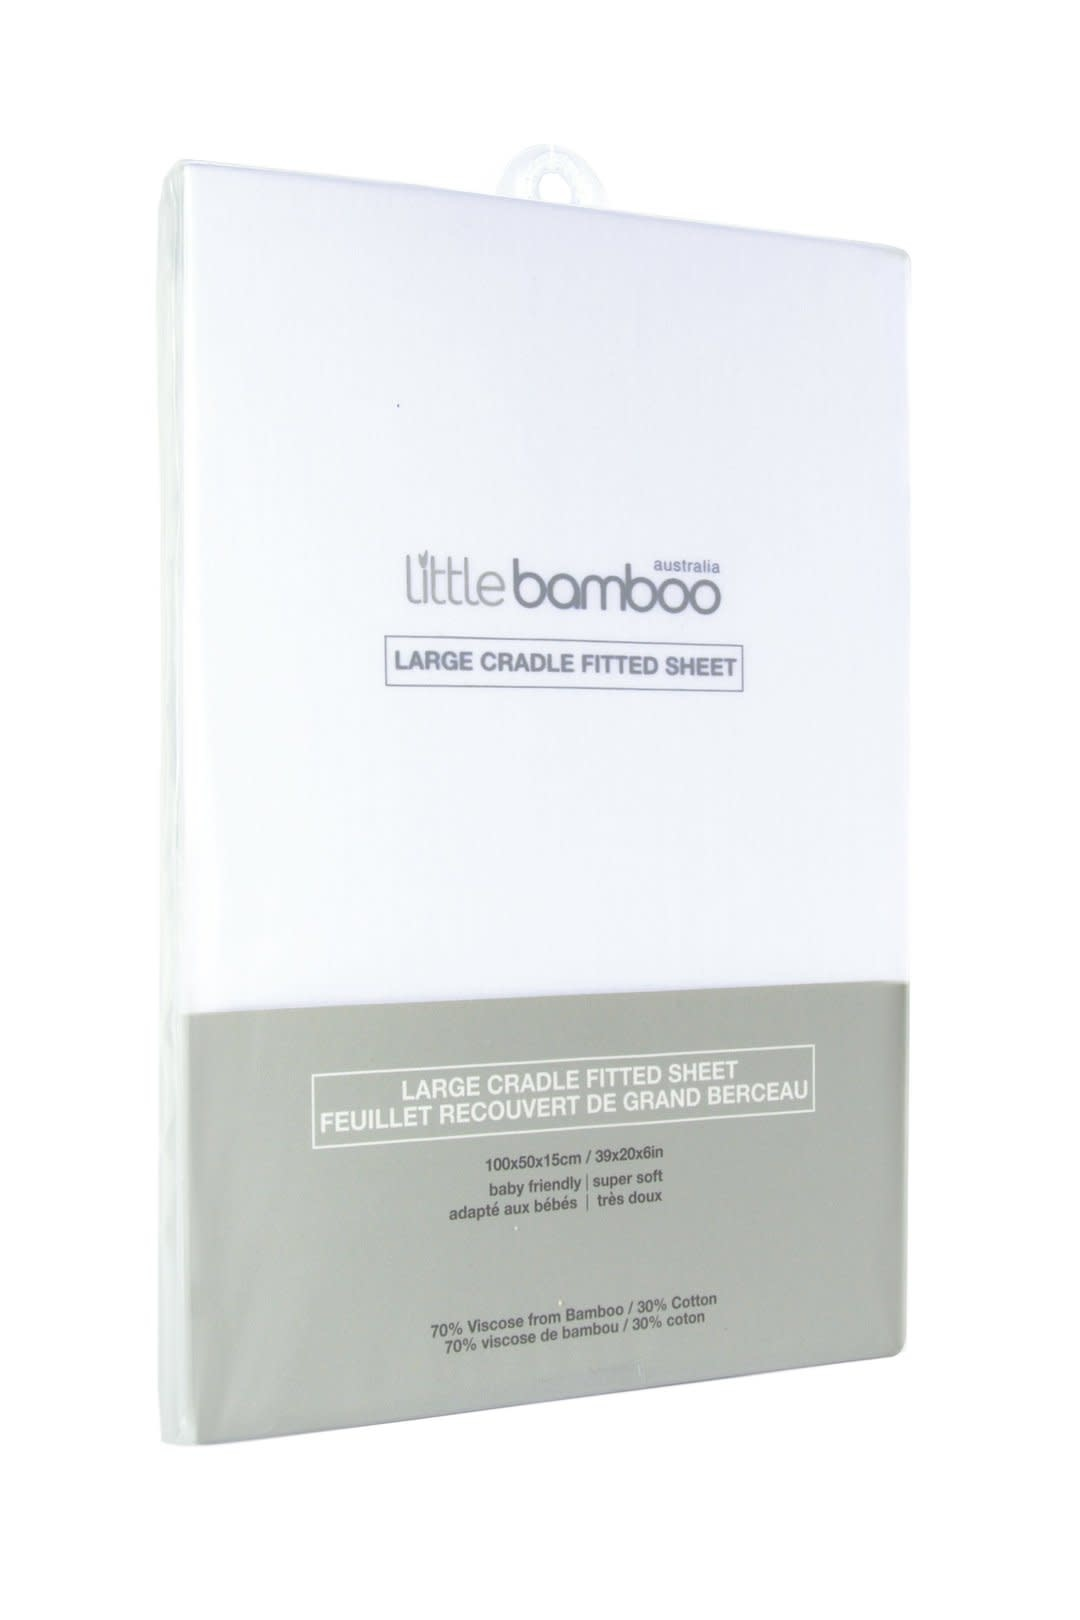 Little Bamboo Little Bamboo Cot Fitted Sheets - 135x77x19cm